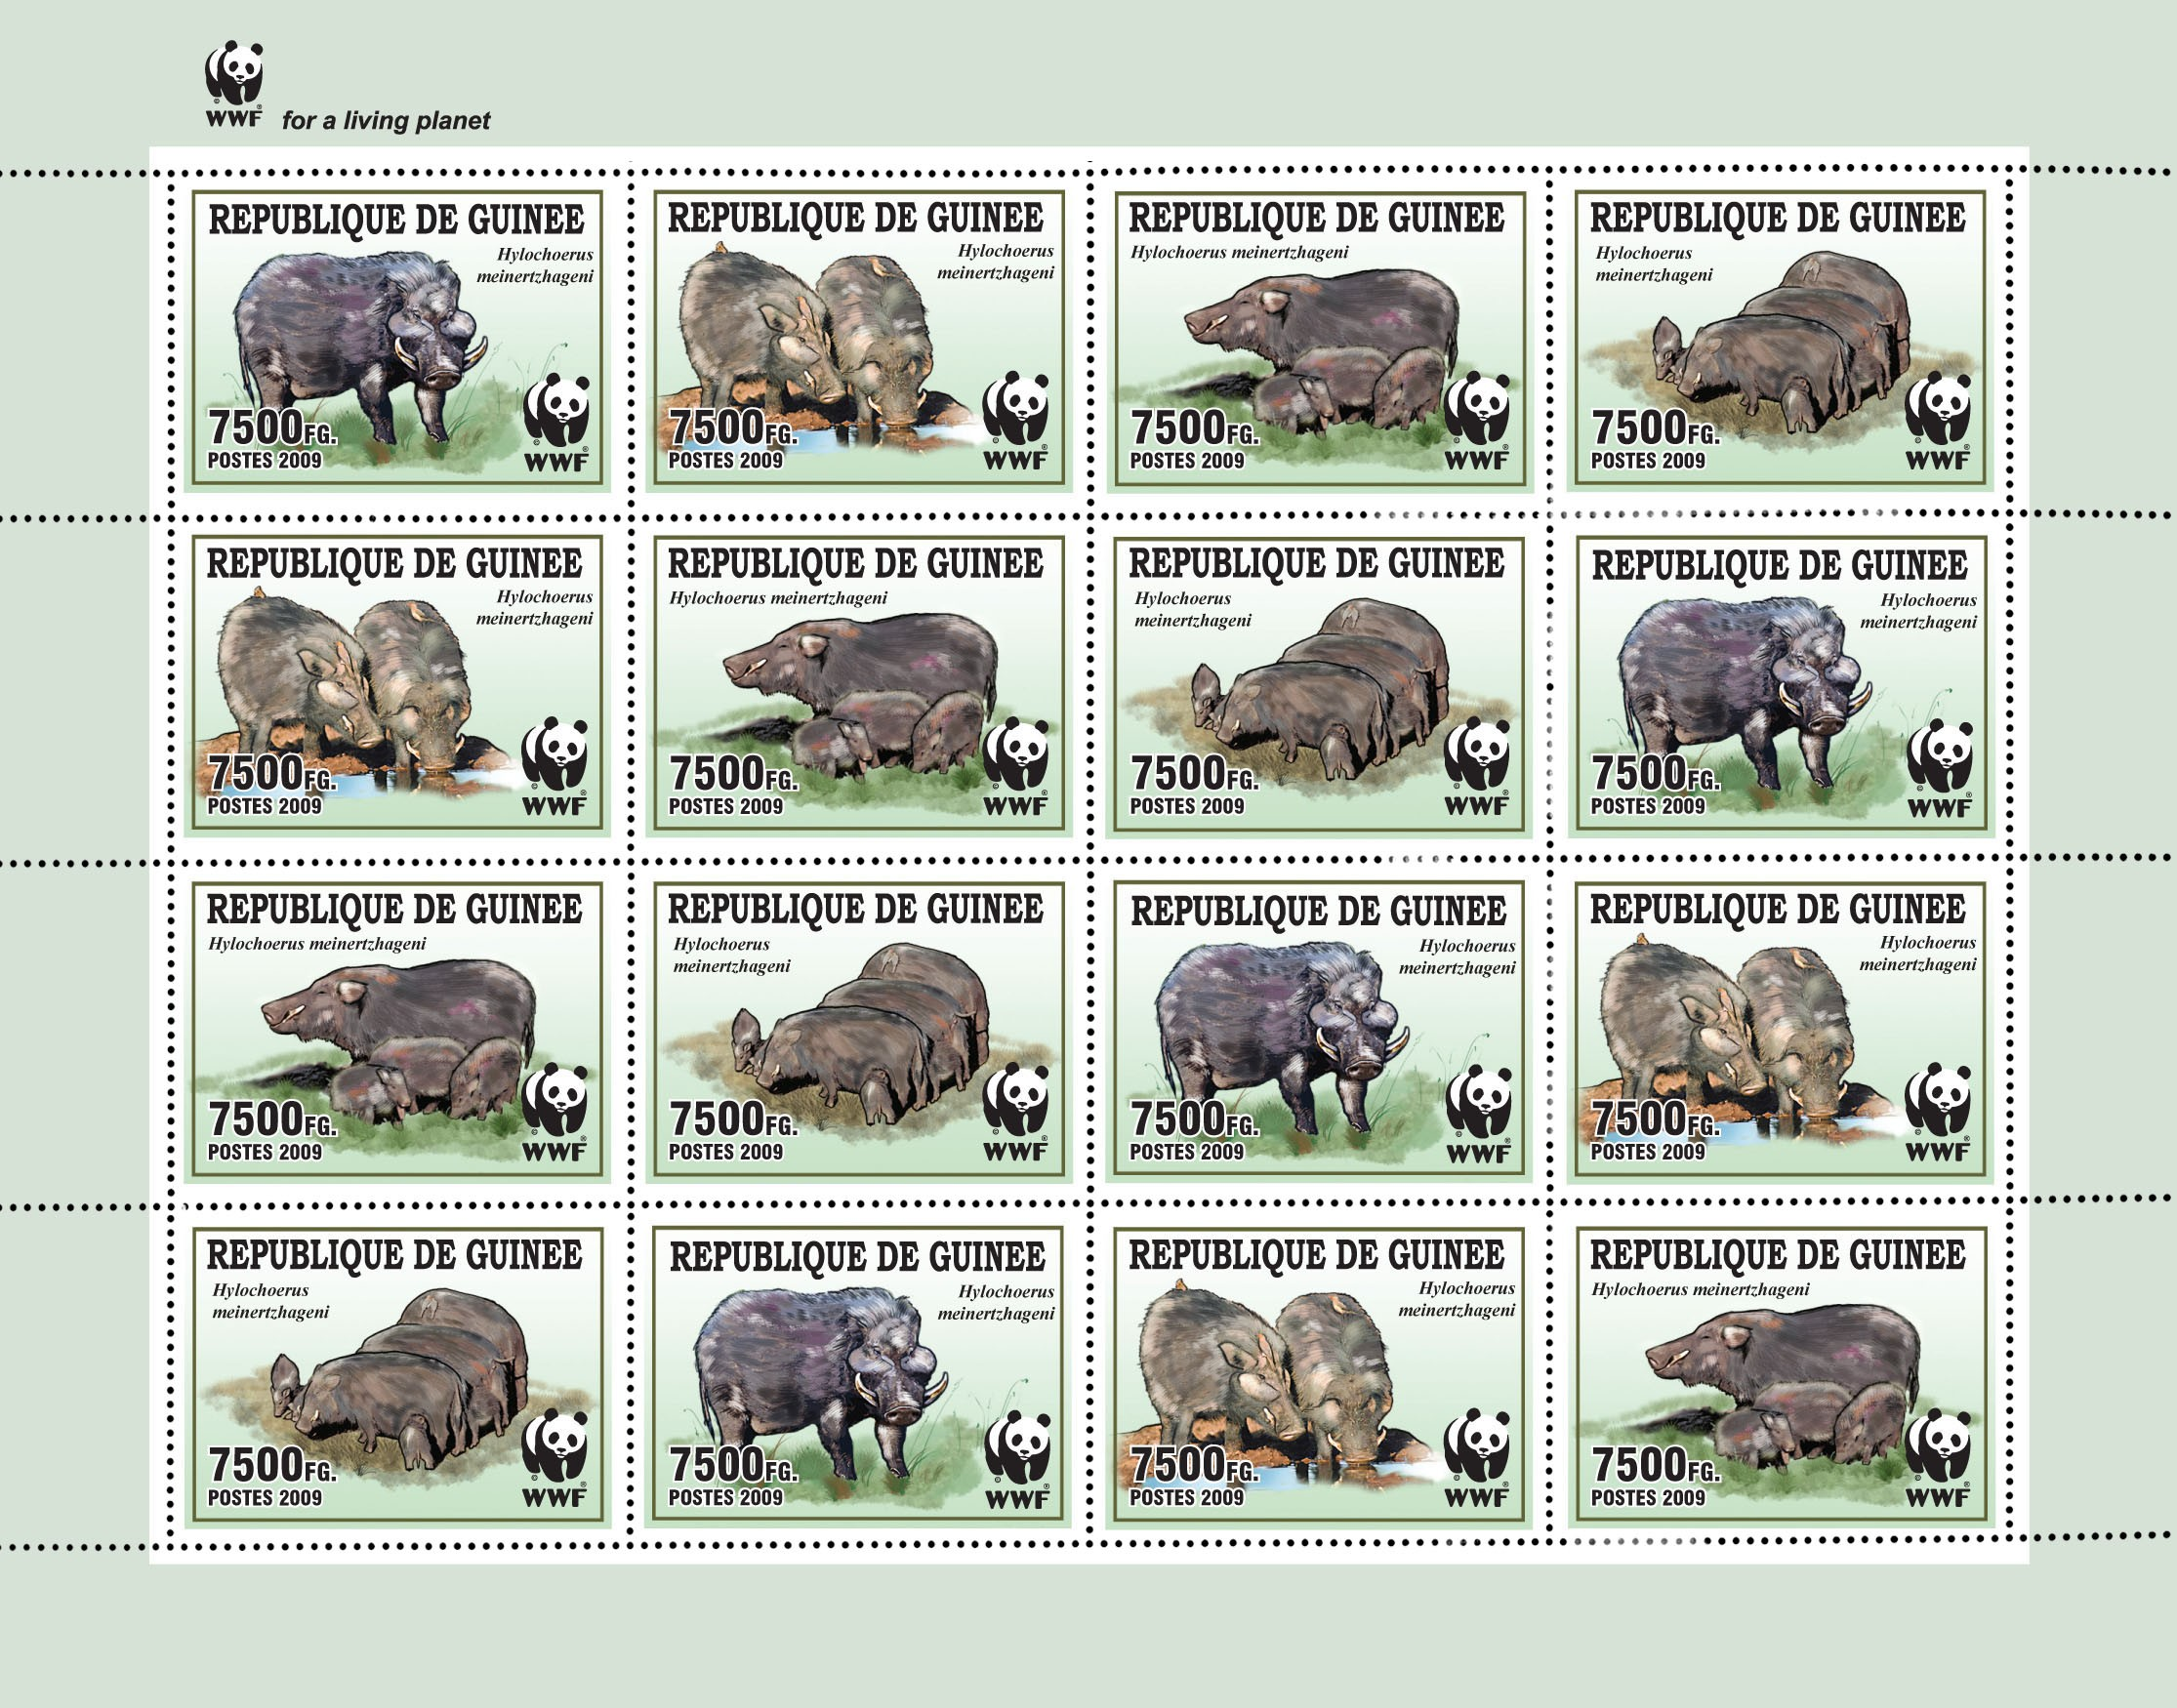 Wild boar / WWF Sheet of 4 sets 16v x 7500 FG - Issue of Guinée postage stamps